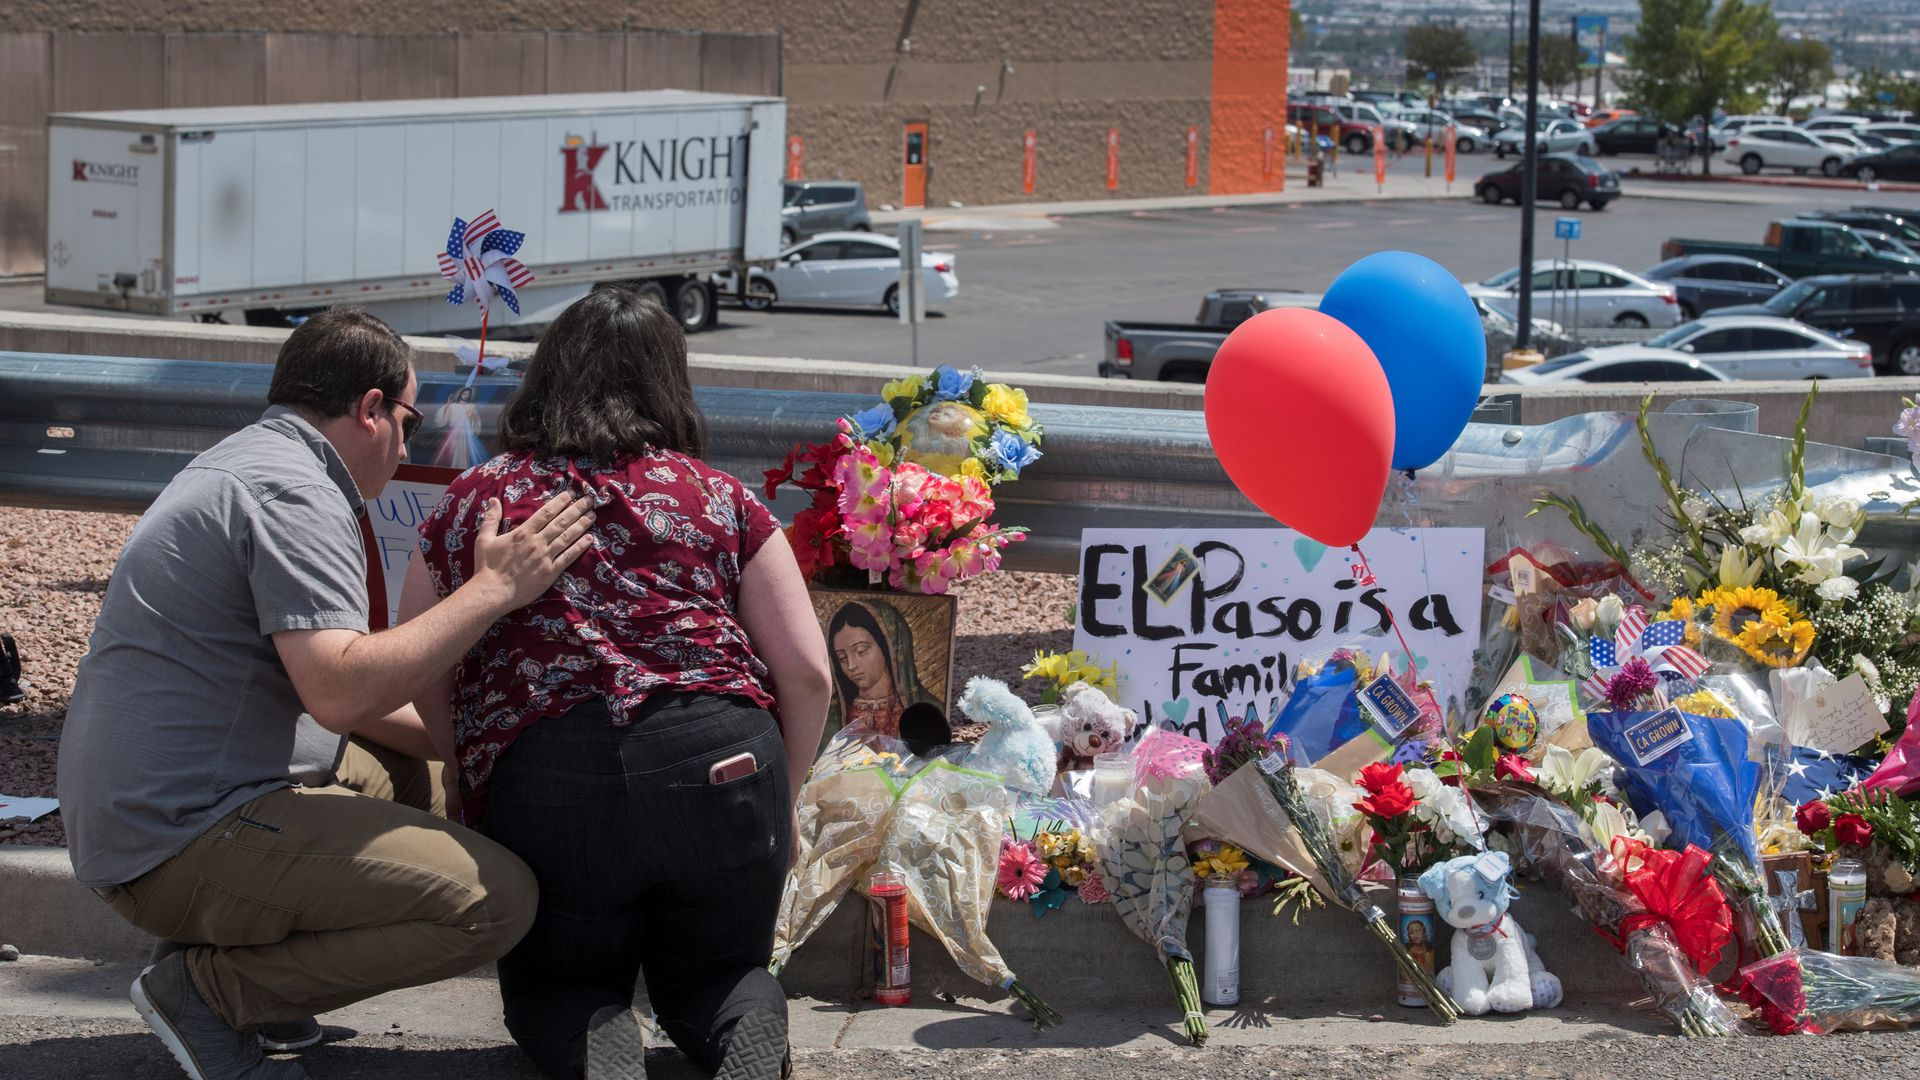 People pray beside a makeshift memorial outside the Cielo Vista Mall Wal-Mart (background) where a shooting left 20 people dead in El Paso, Texas, on August 4, 2019.